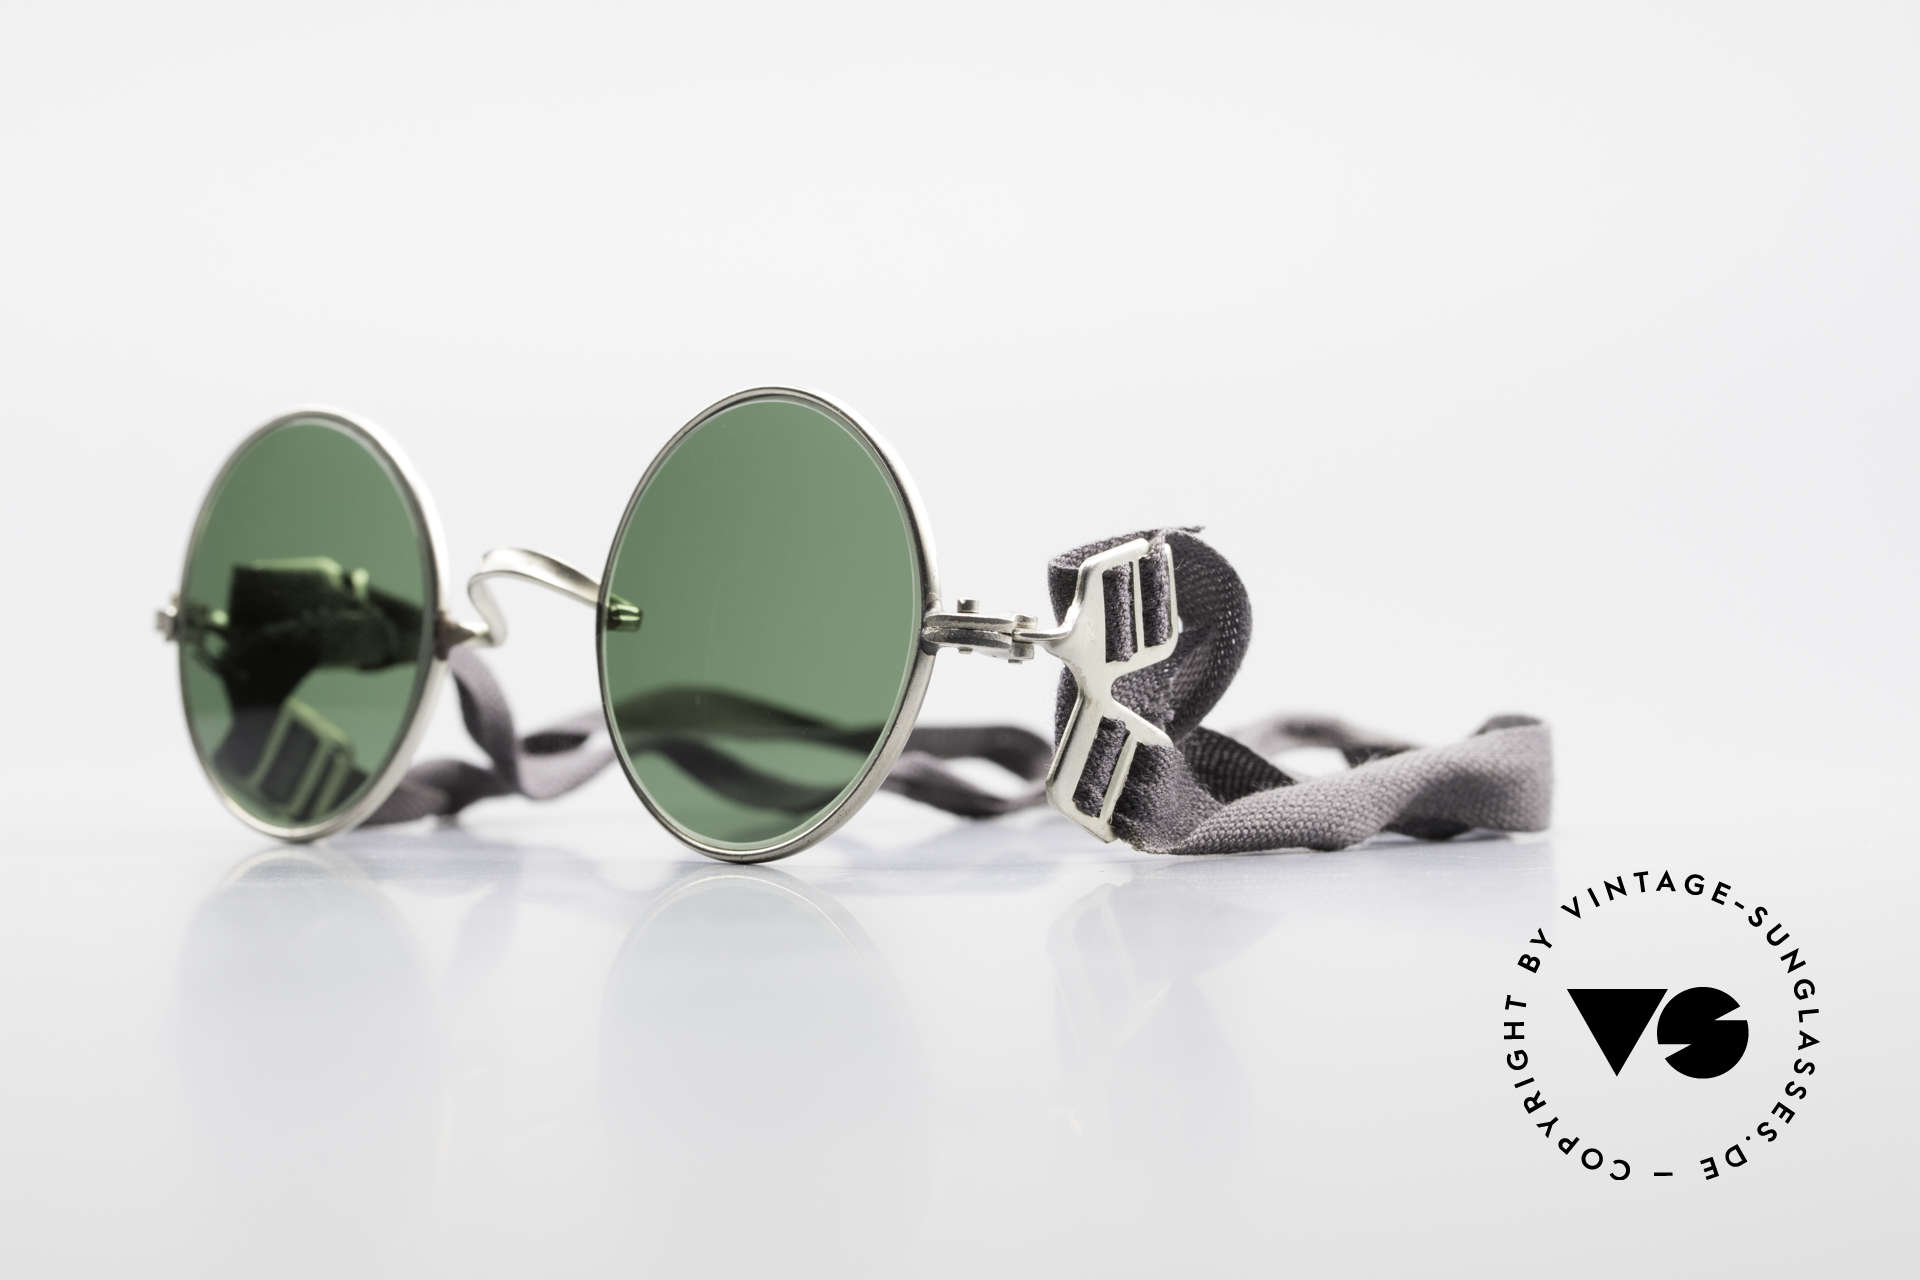 Militärbrille Round Old Army Military Sunglasses, rather FUN sunglasses for a steampunk outfit, Made for Men